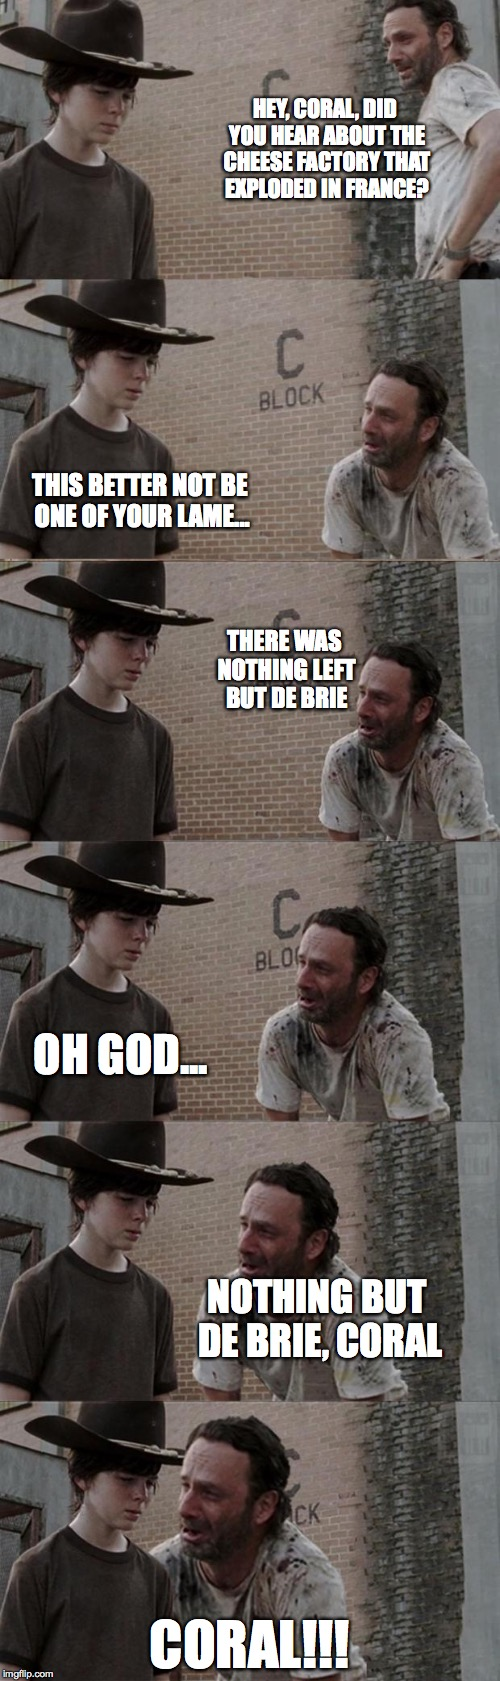 Rick and Carl | HEY, CORAL, DID YOU HEAR ABOUT THE CHEESE FACTORY THAT EXPLODED IN FRANCE? CORAL!!! THIS BETTER NOT BE ONE OF YOUR LAME... THERE WAS NOTHING | image tagged in rick and carl,the walking dead,bad pun,memes,funny | made w/ Imgflip meme maker